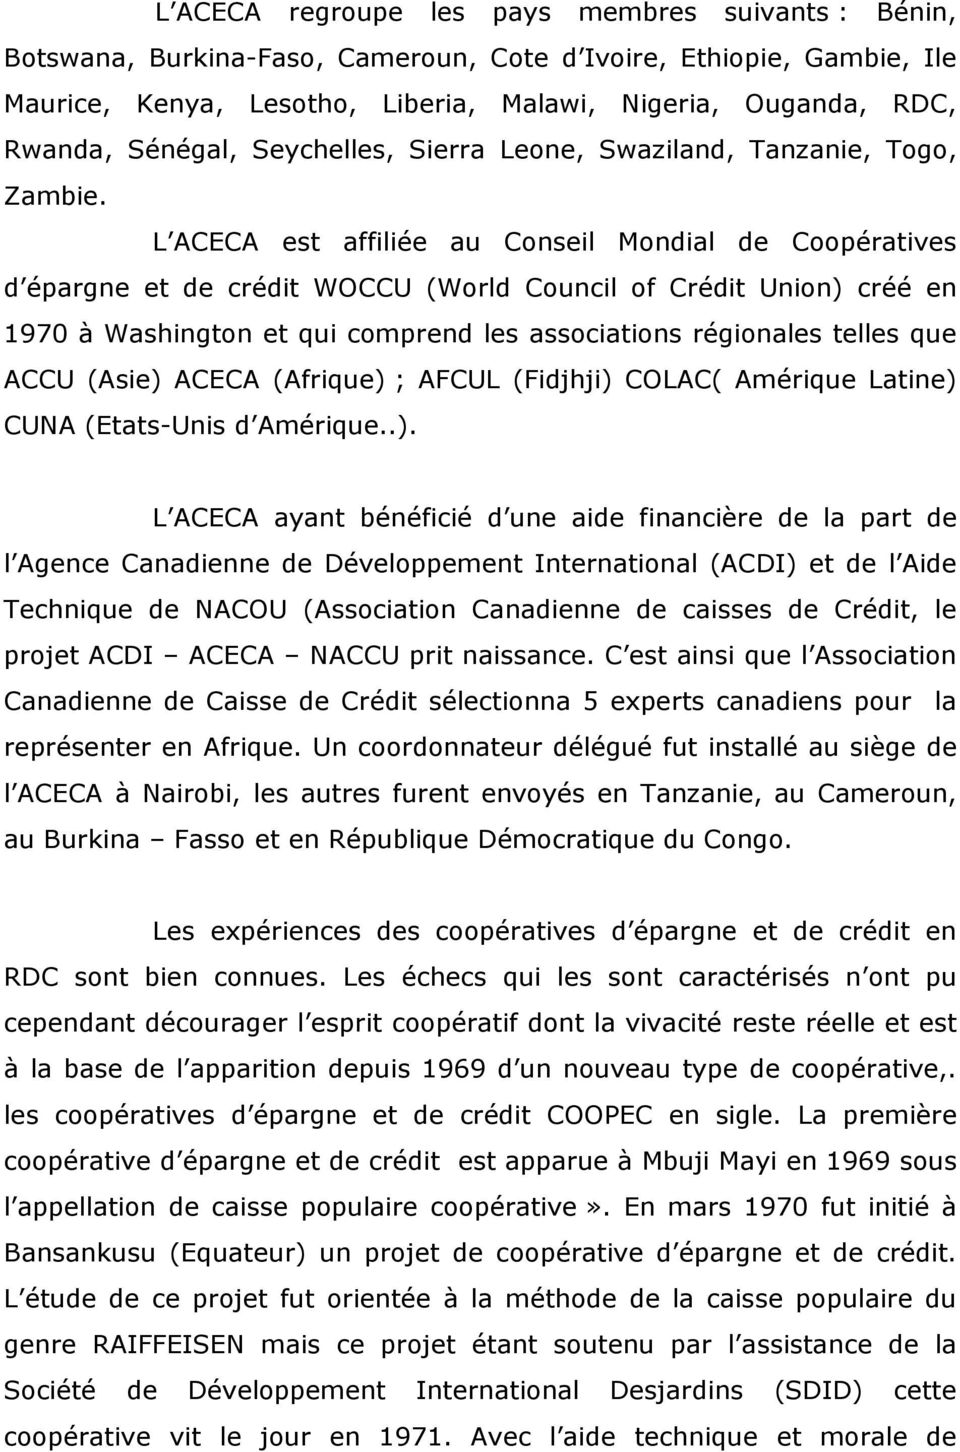 L ACECA est affiliée au Conseil Mondial de Coopératives d épargne et de crédit WOCCU (World Council of Crédit Union) créé en 1970 à Washington et qui comprend les associations régionales telles que